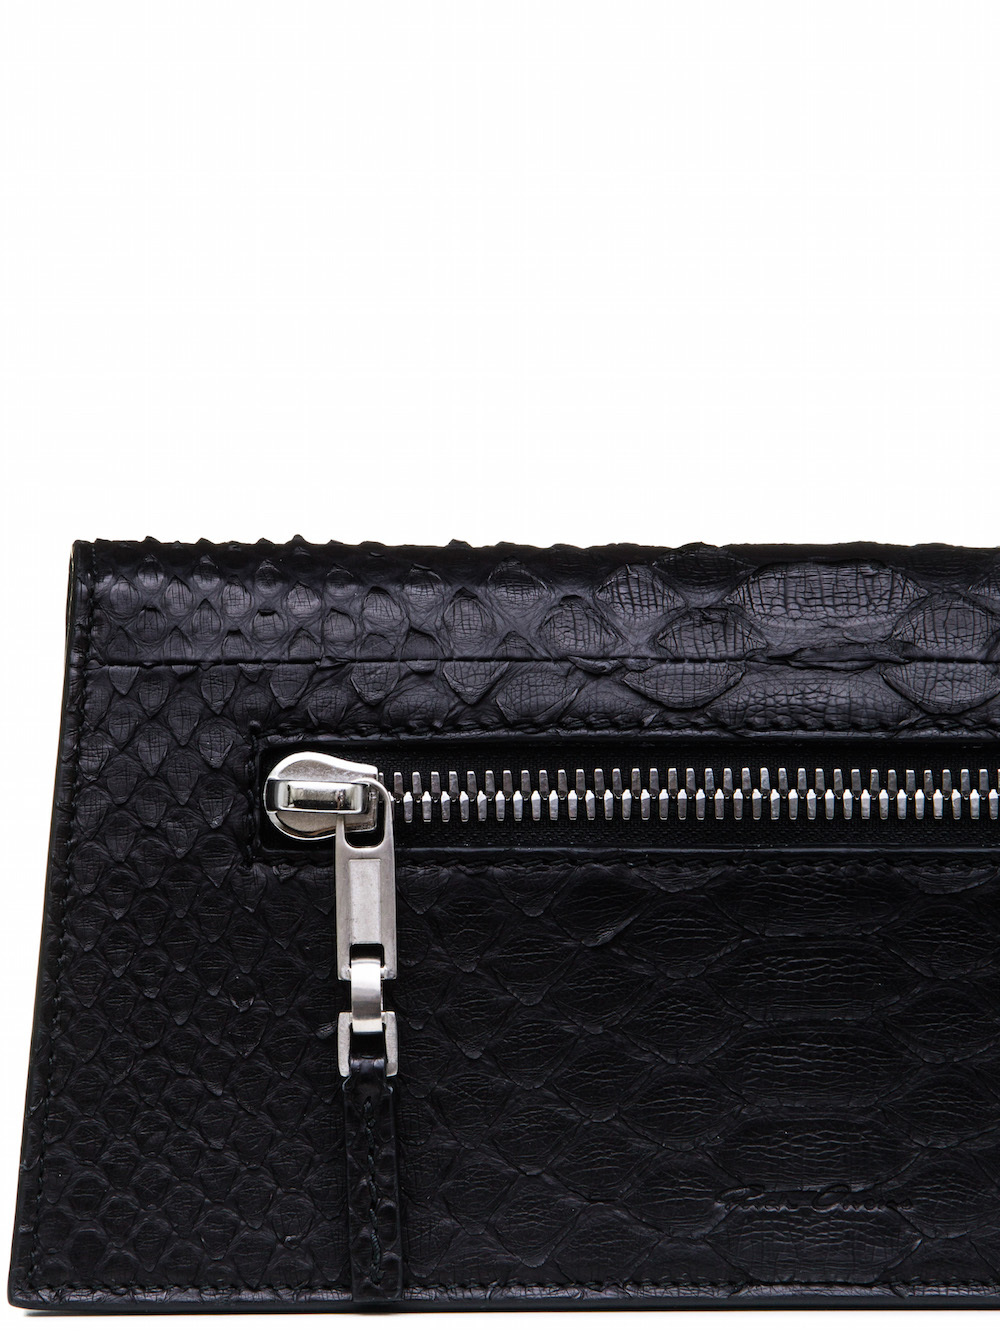 RICK OWENS MIDI CLUTCH IN BLACK GIANT PYTHON LEATHER